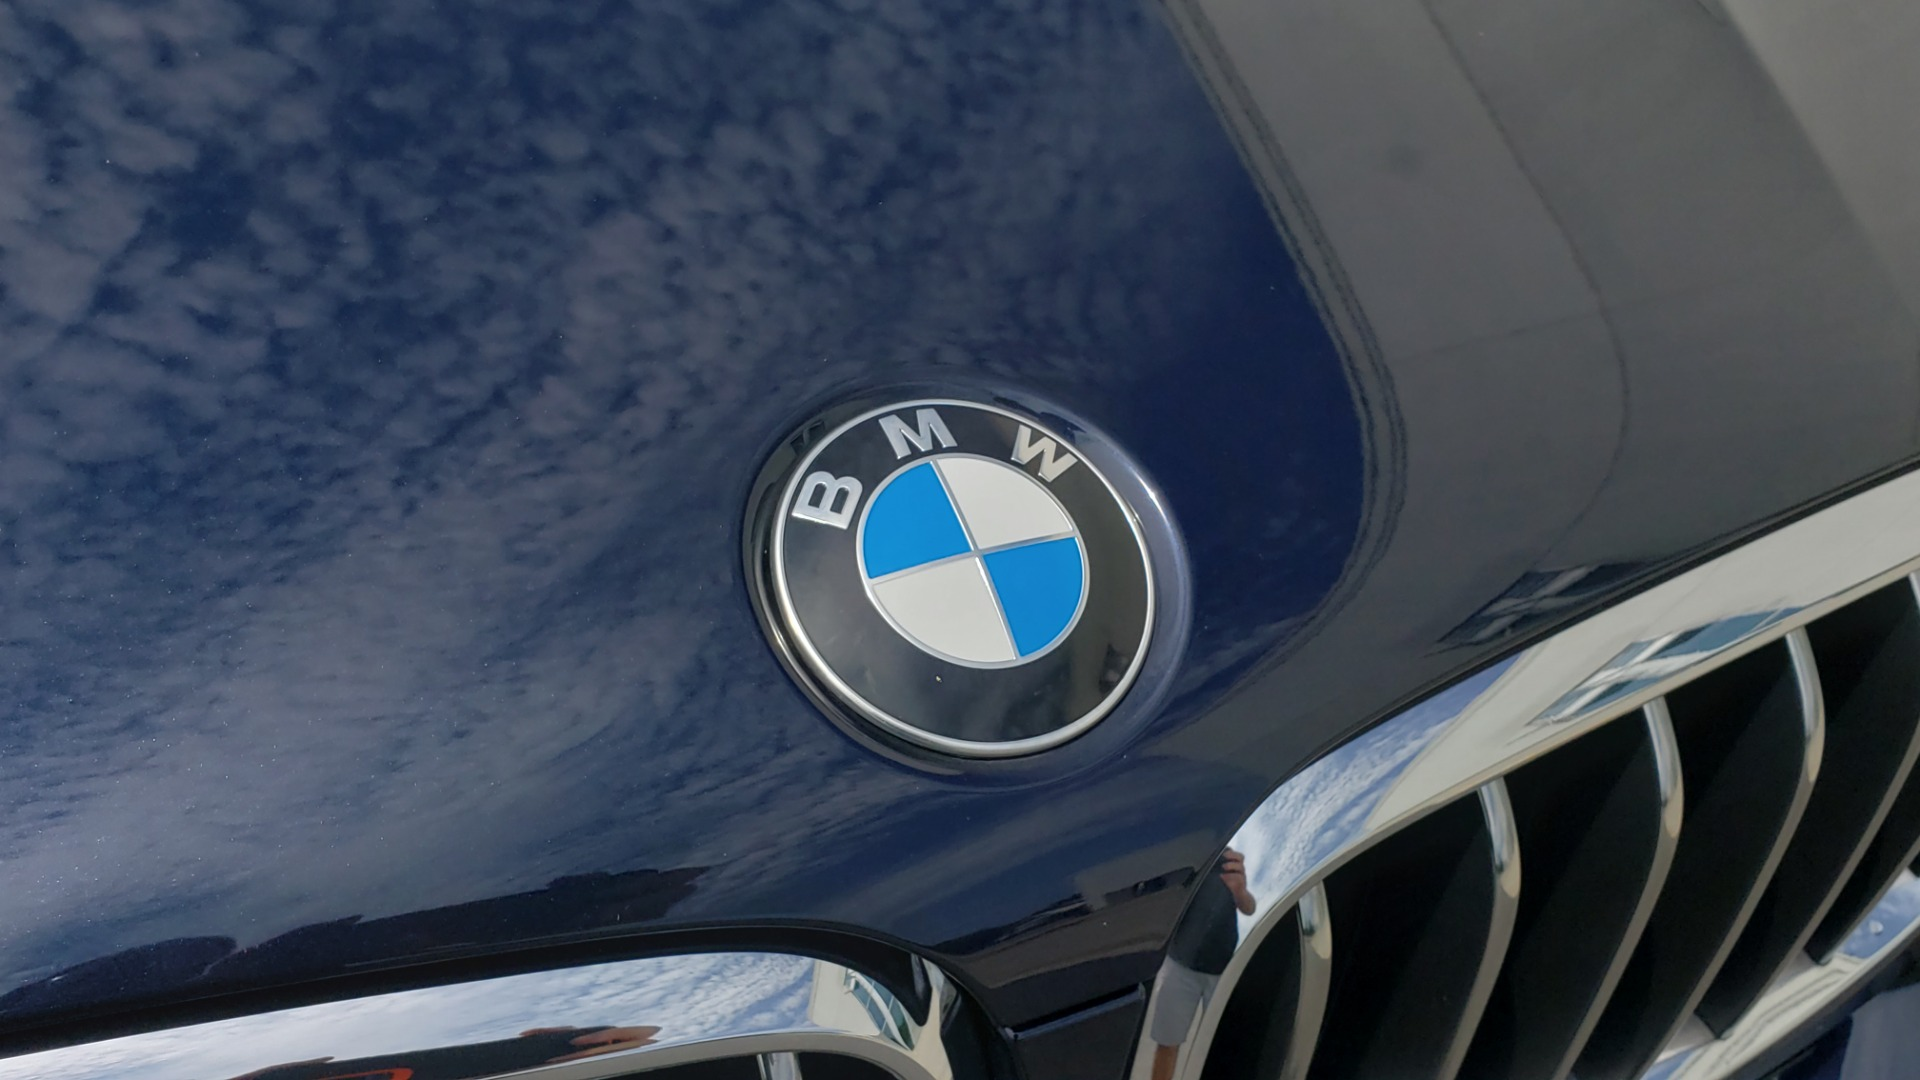 Used 2018 BMW X5 XDRIVE35I PREMIUM / LUXURY / DRVR ASST / HUD / LANE WARNING / REARVIEW for sale $43,695 at Formula Imports in Charlotte NC 28227 17